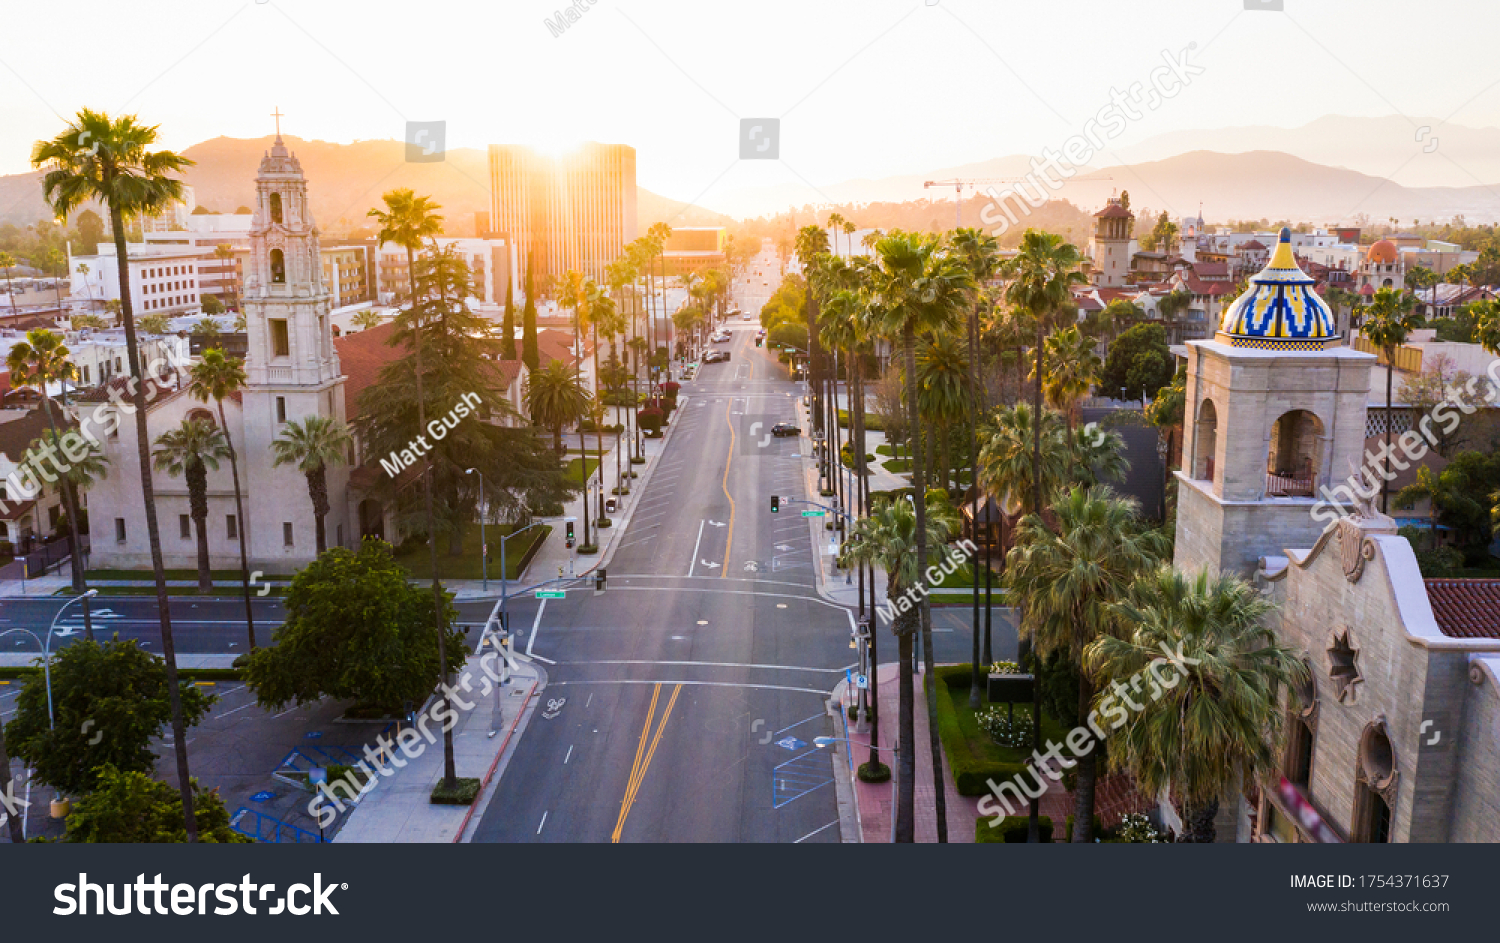 Sunset aerial view of historic downtown Riverside, California. #1754371637